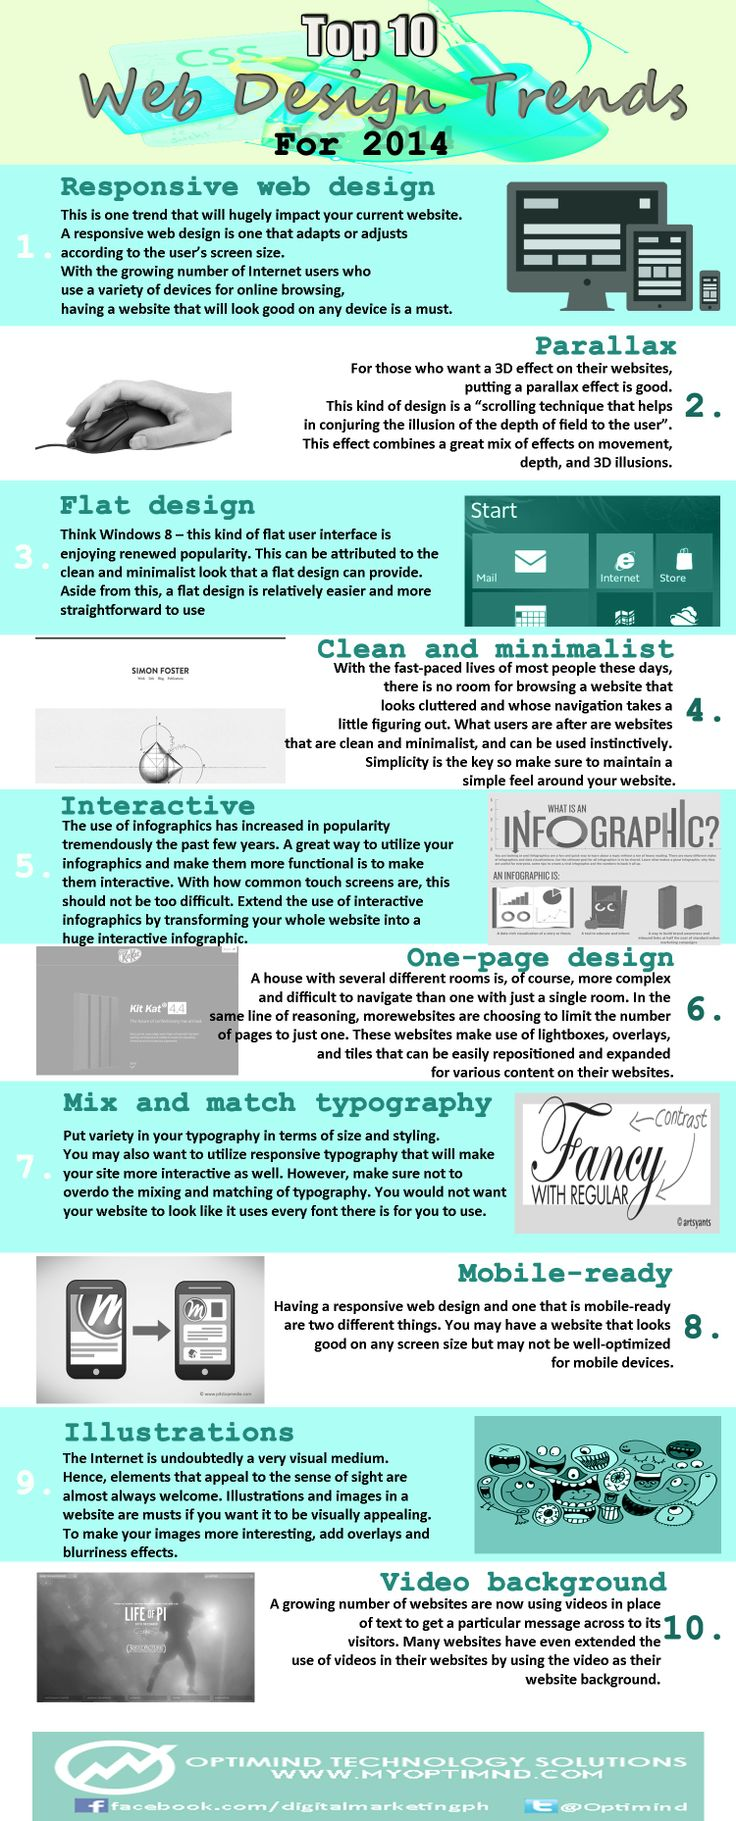 If you are planning to update your website design this 2014, here are some of the design trends that would be good to know so you can be specific with your web design company with what you want in your website.  For more information visit www.myoptimind.com